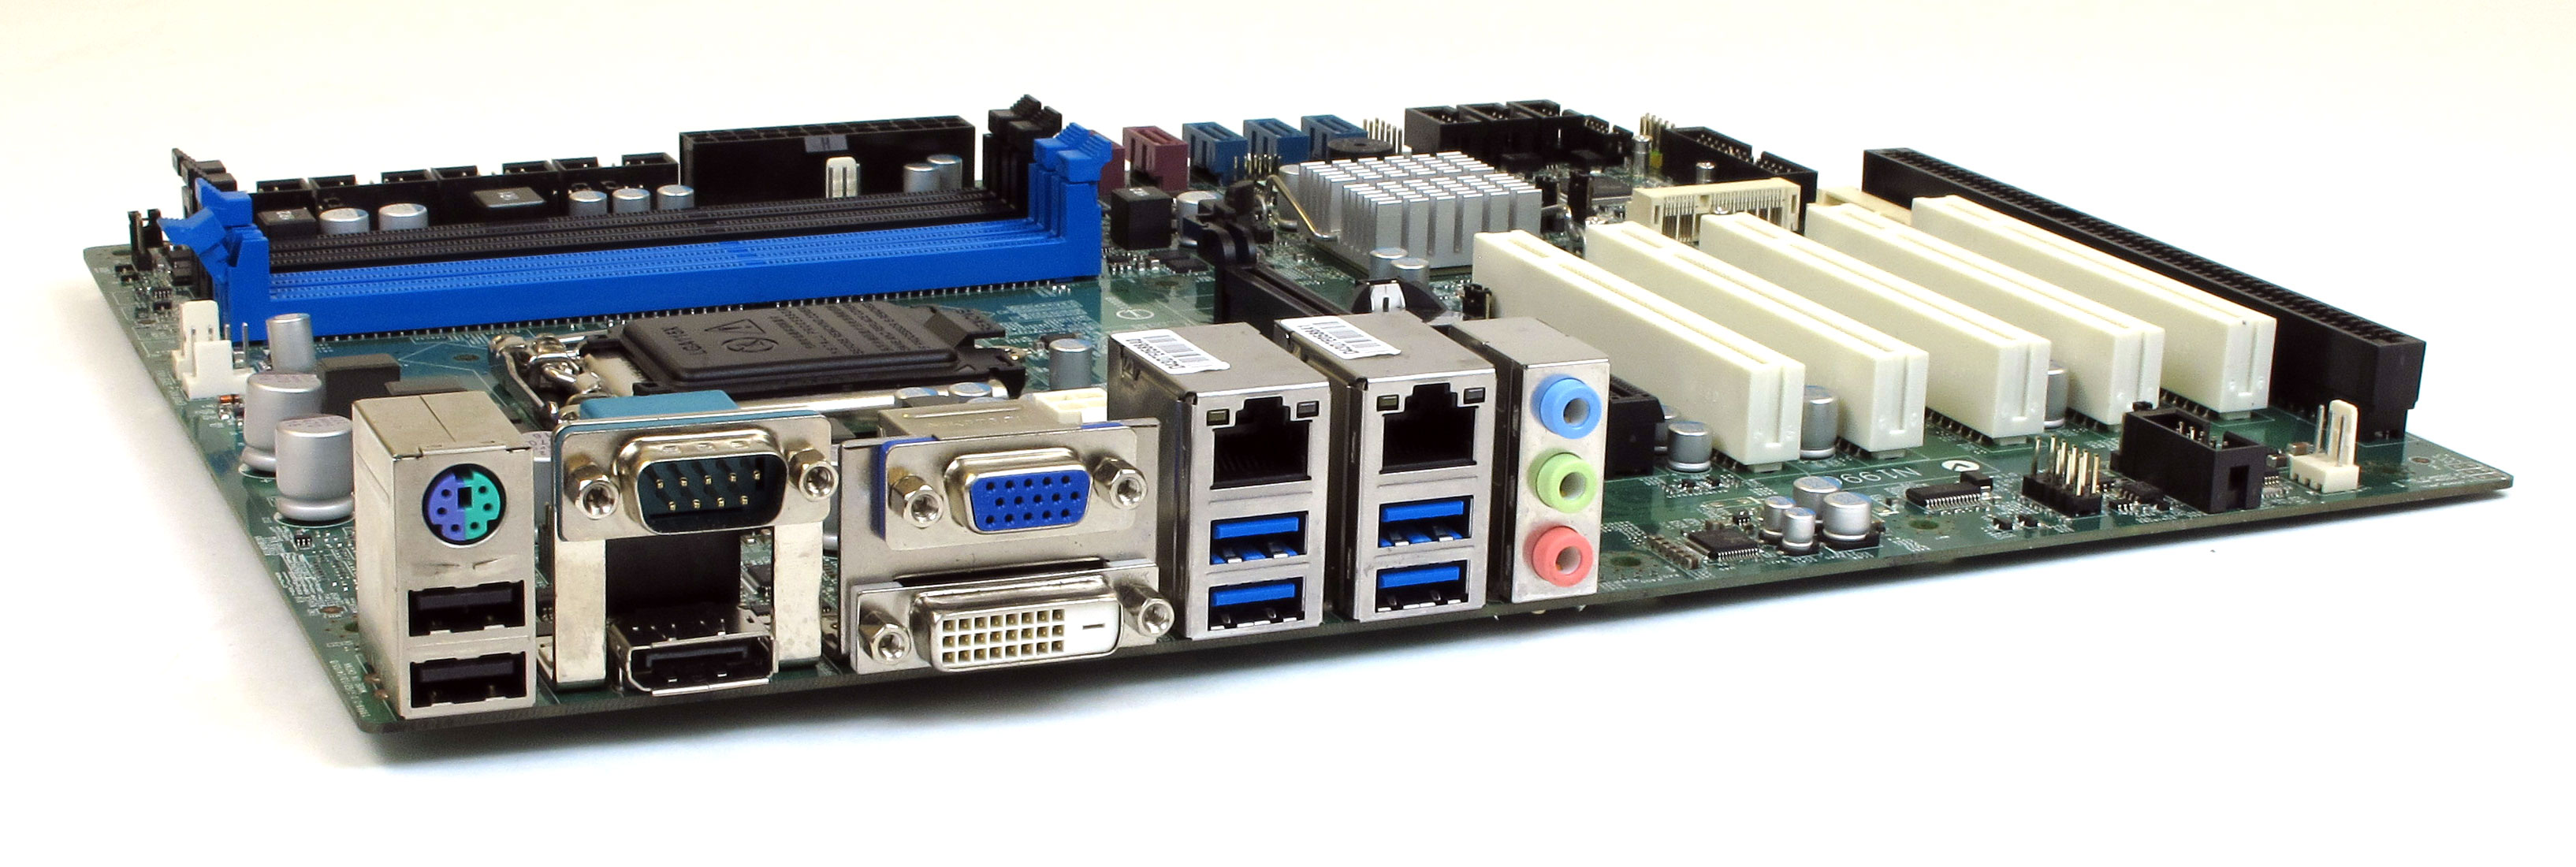 MS-98A9 Industrial Motherboard Rear Panel